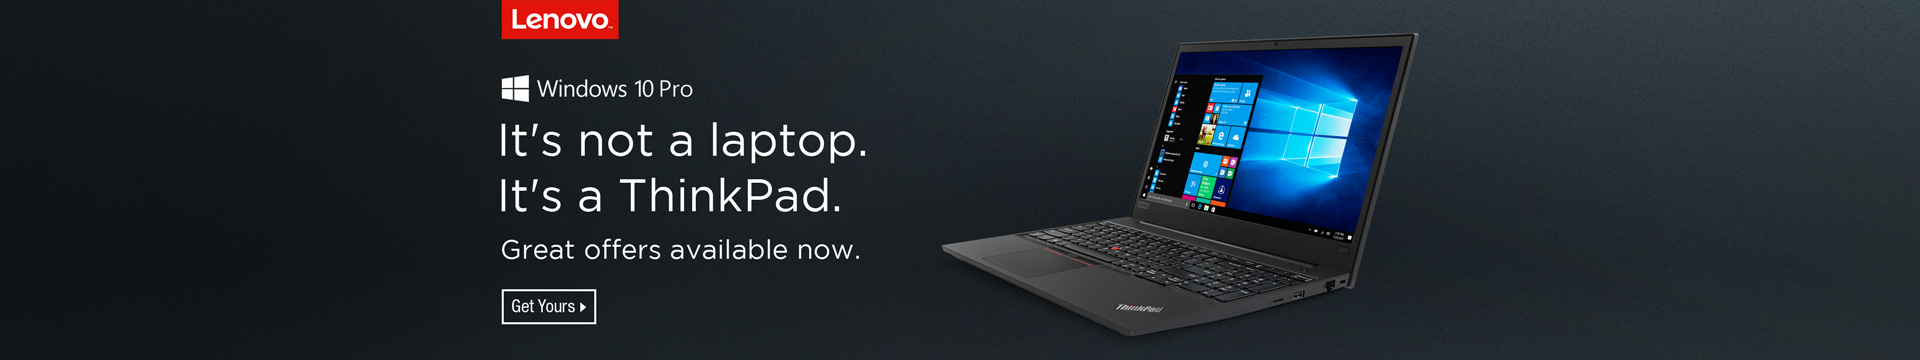 It's not a laptop. It's a Thinkpad